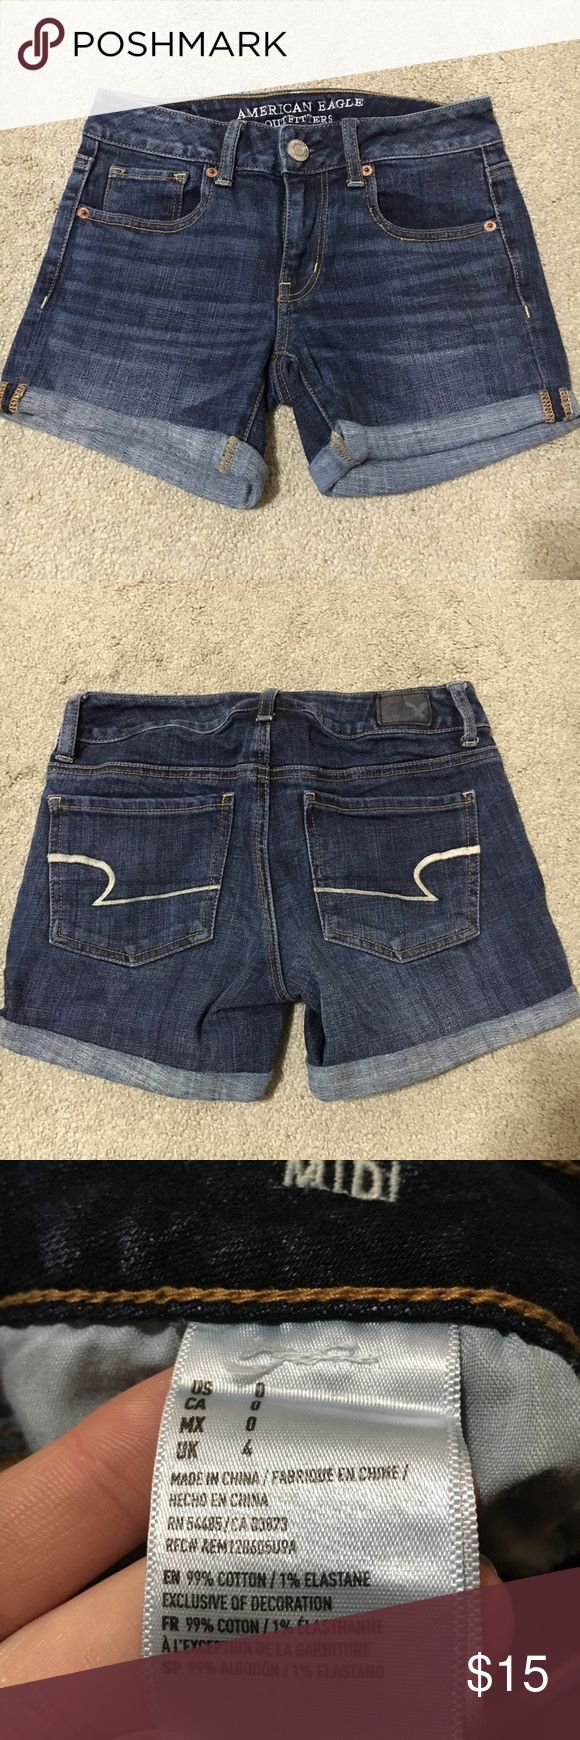 American Eagle Jean Shorts -Only worn a few times -Super comfortable and stretchy -Medium wash denim American Eagle Outfitters Shorts Jean Shorts